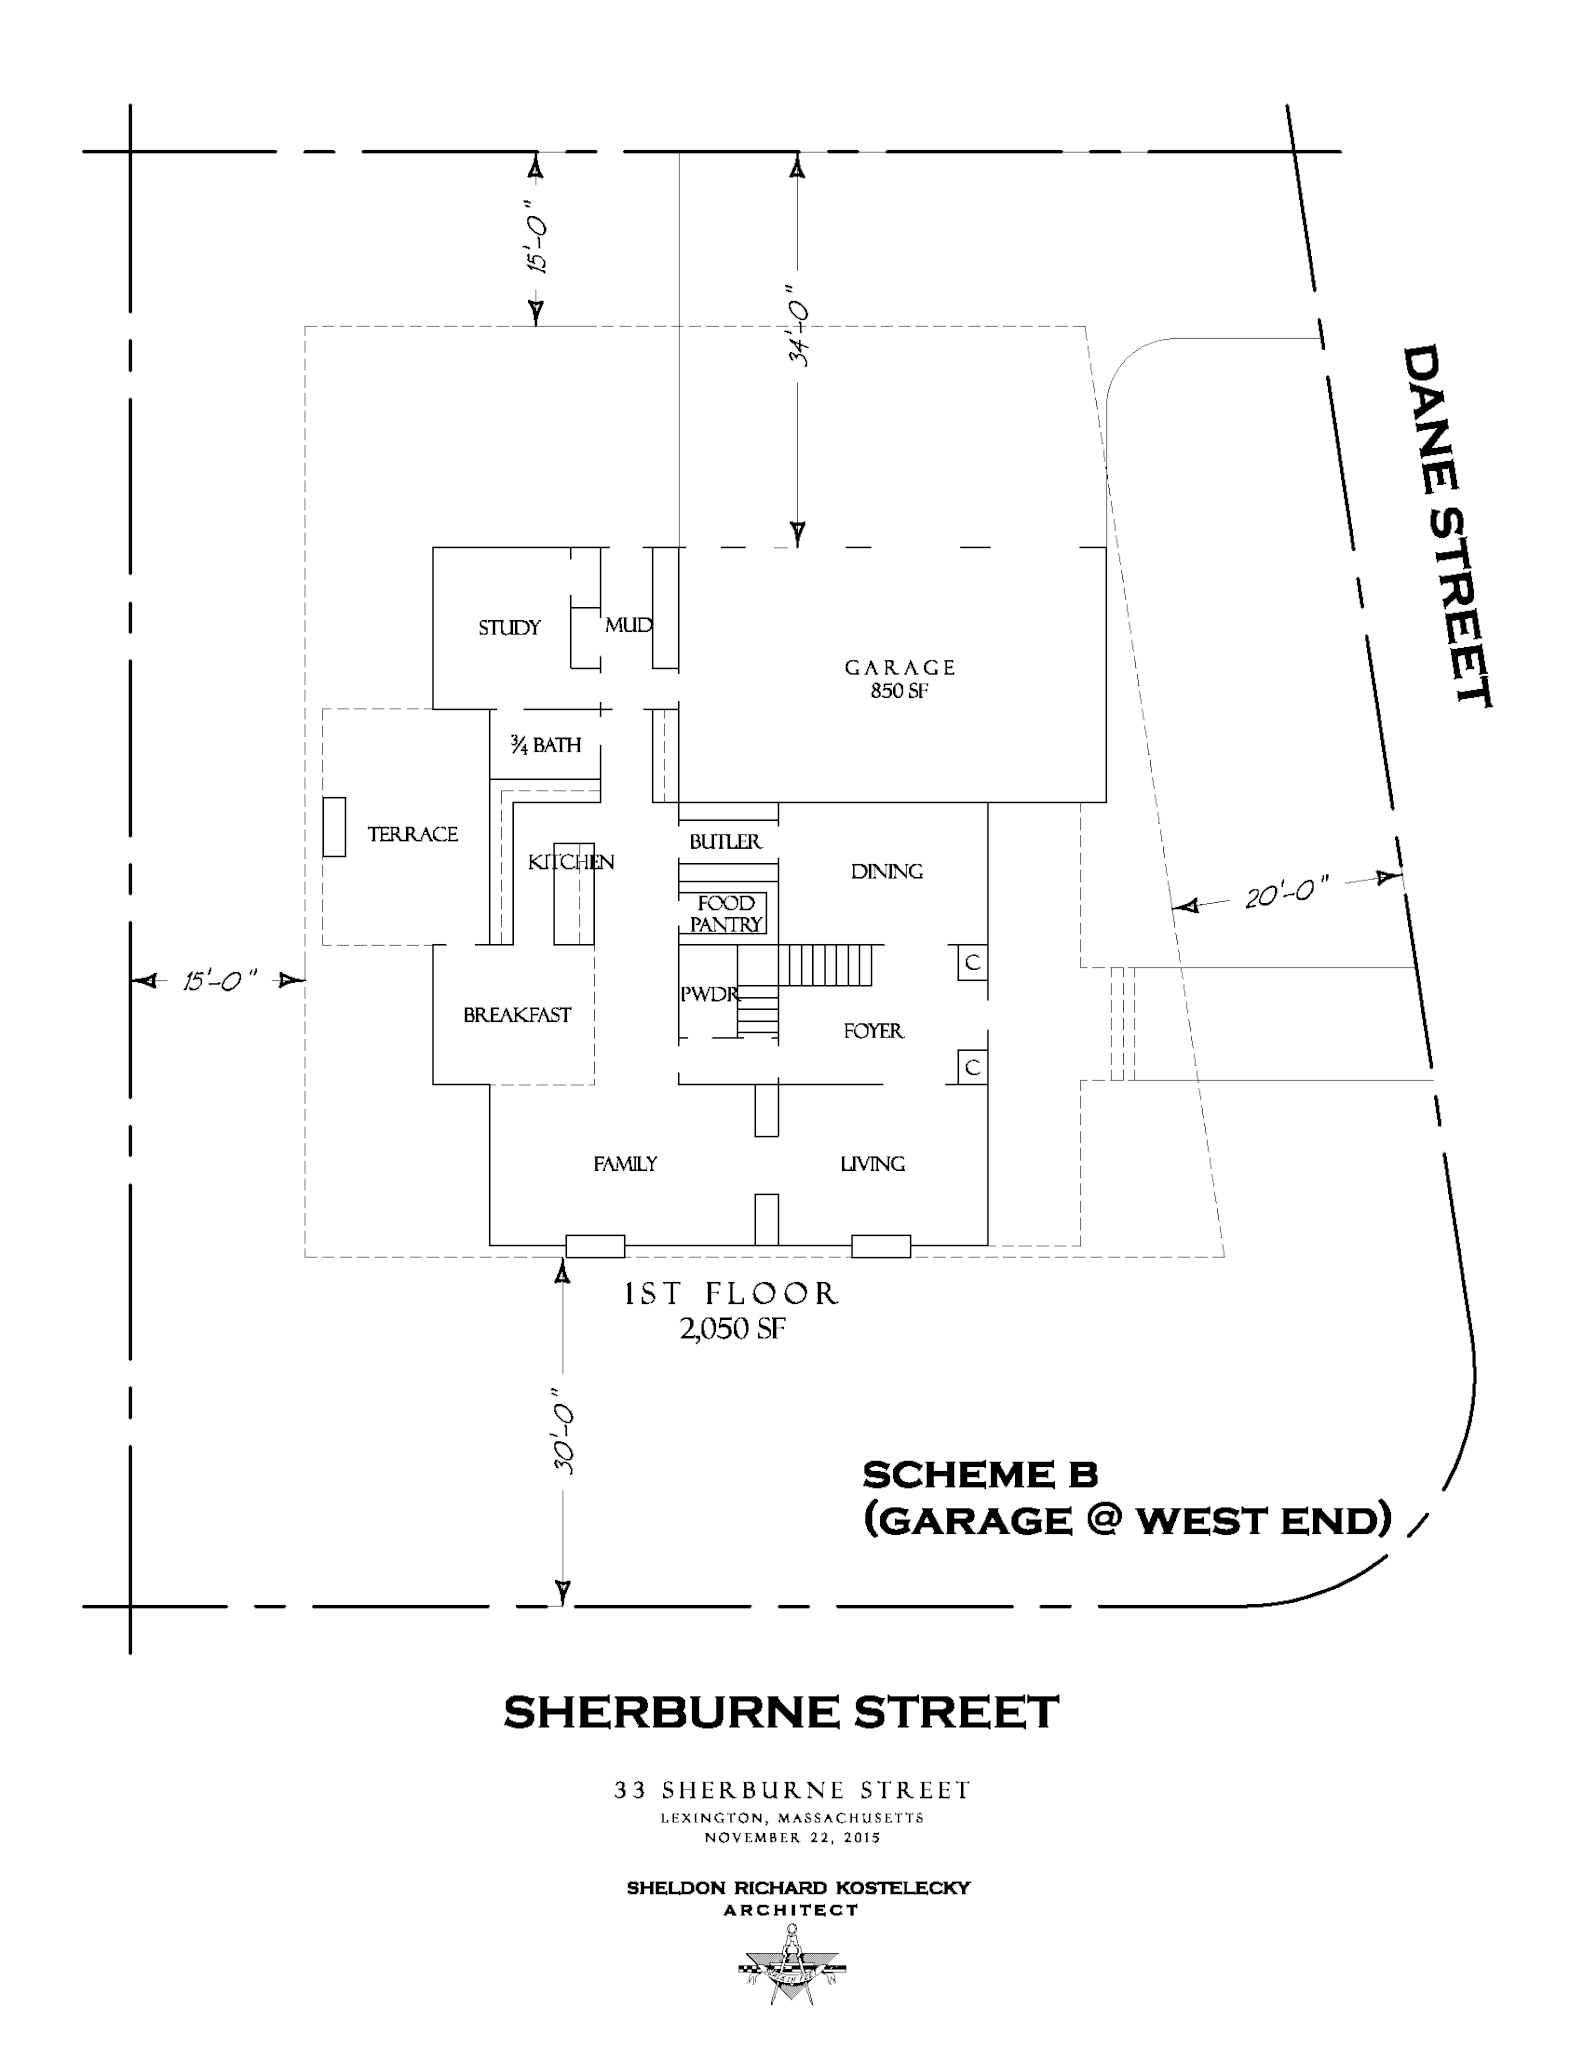 Locating a schematic plan on a lot